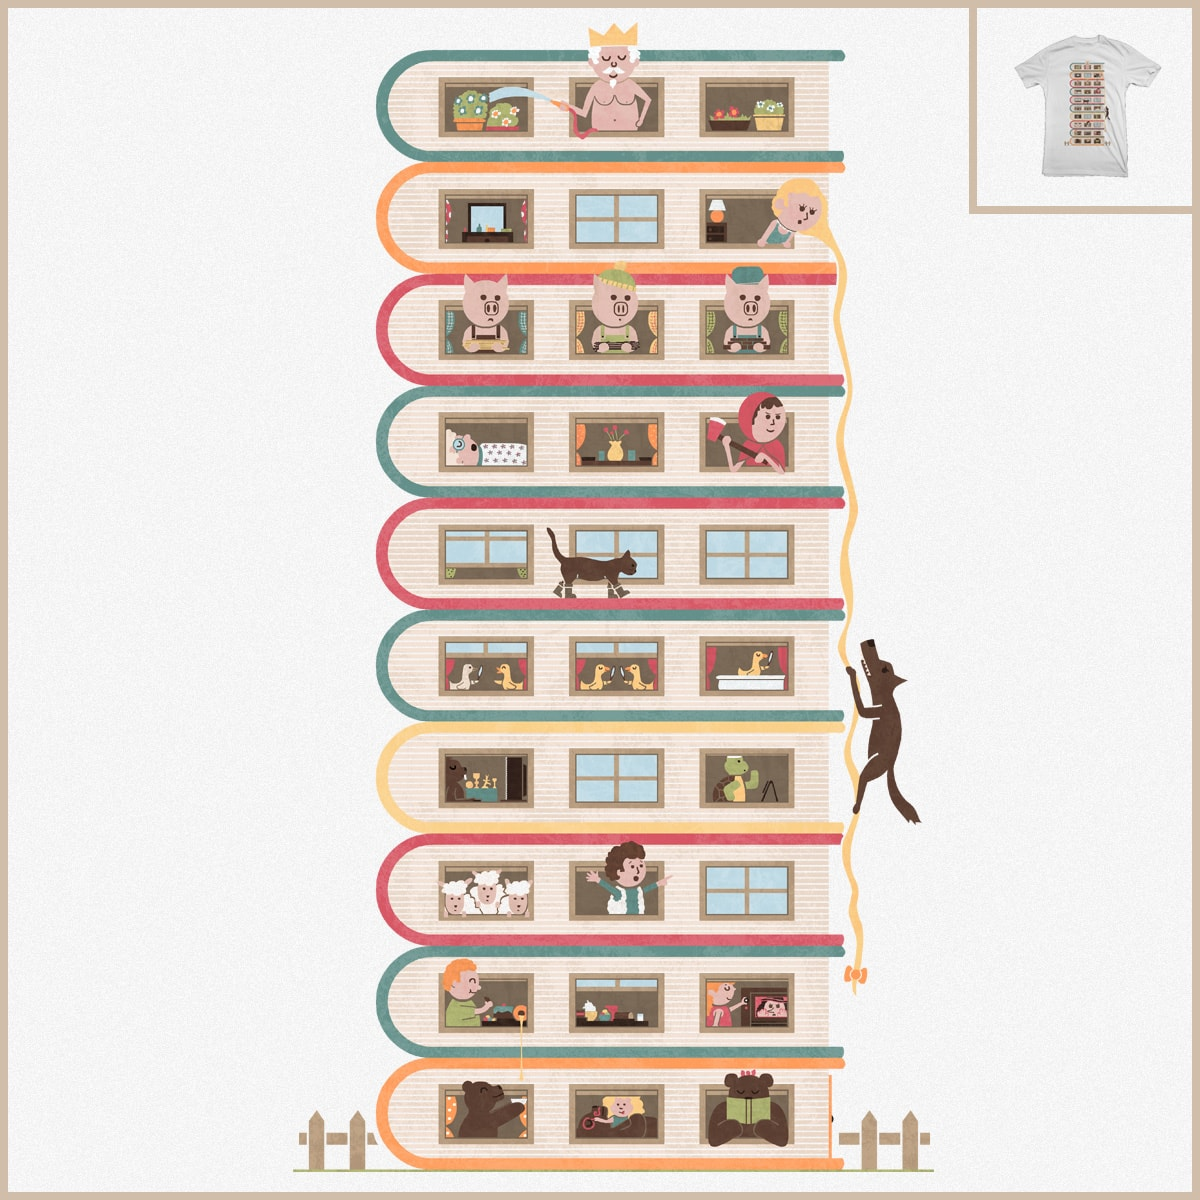 10 Stories High by TeoZ on Threadless